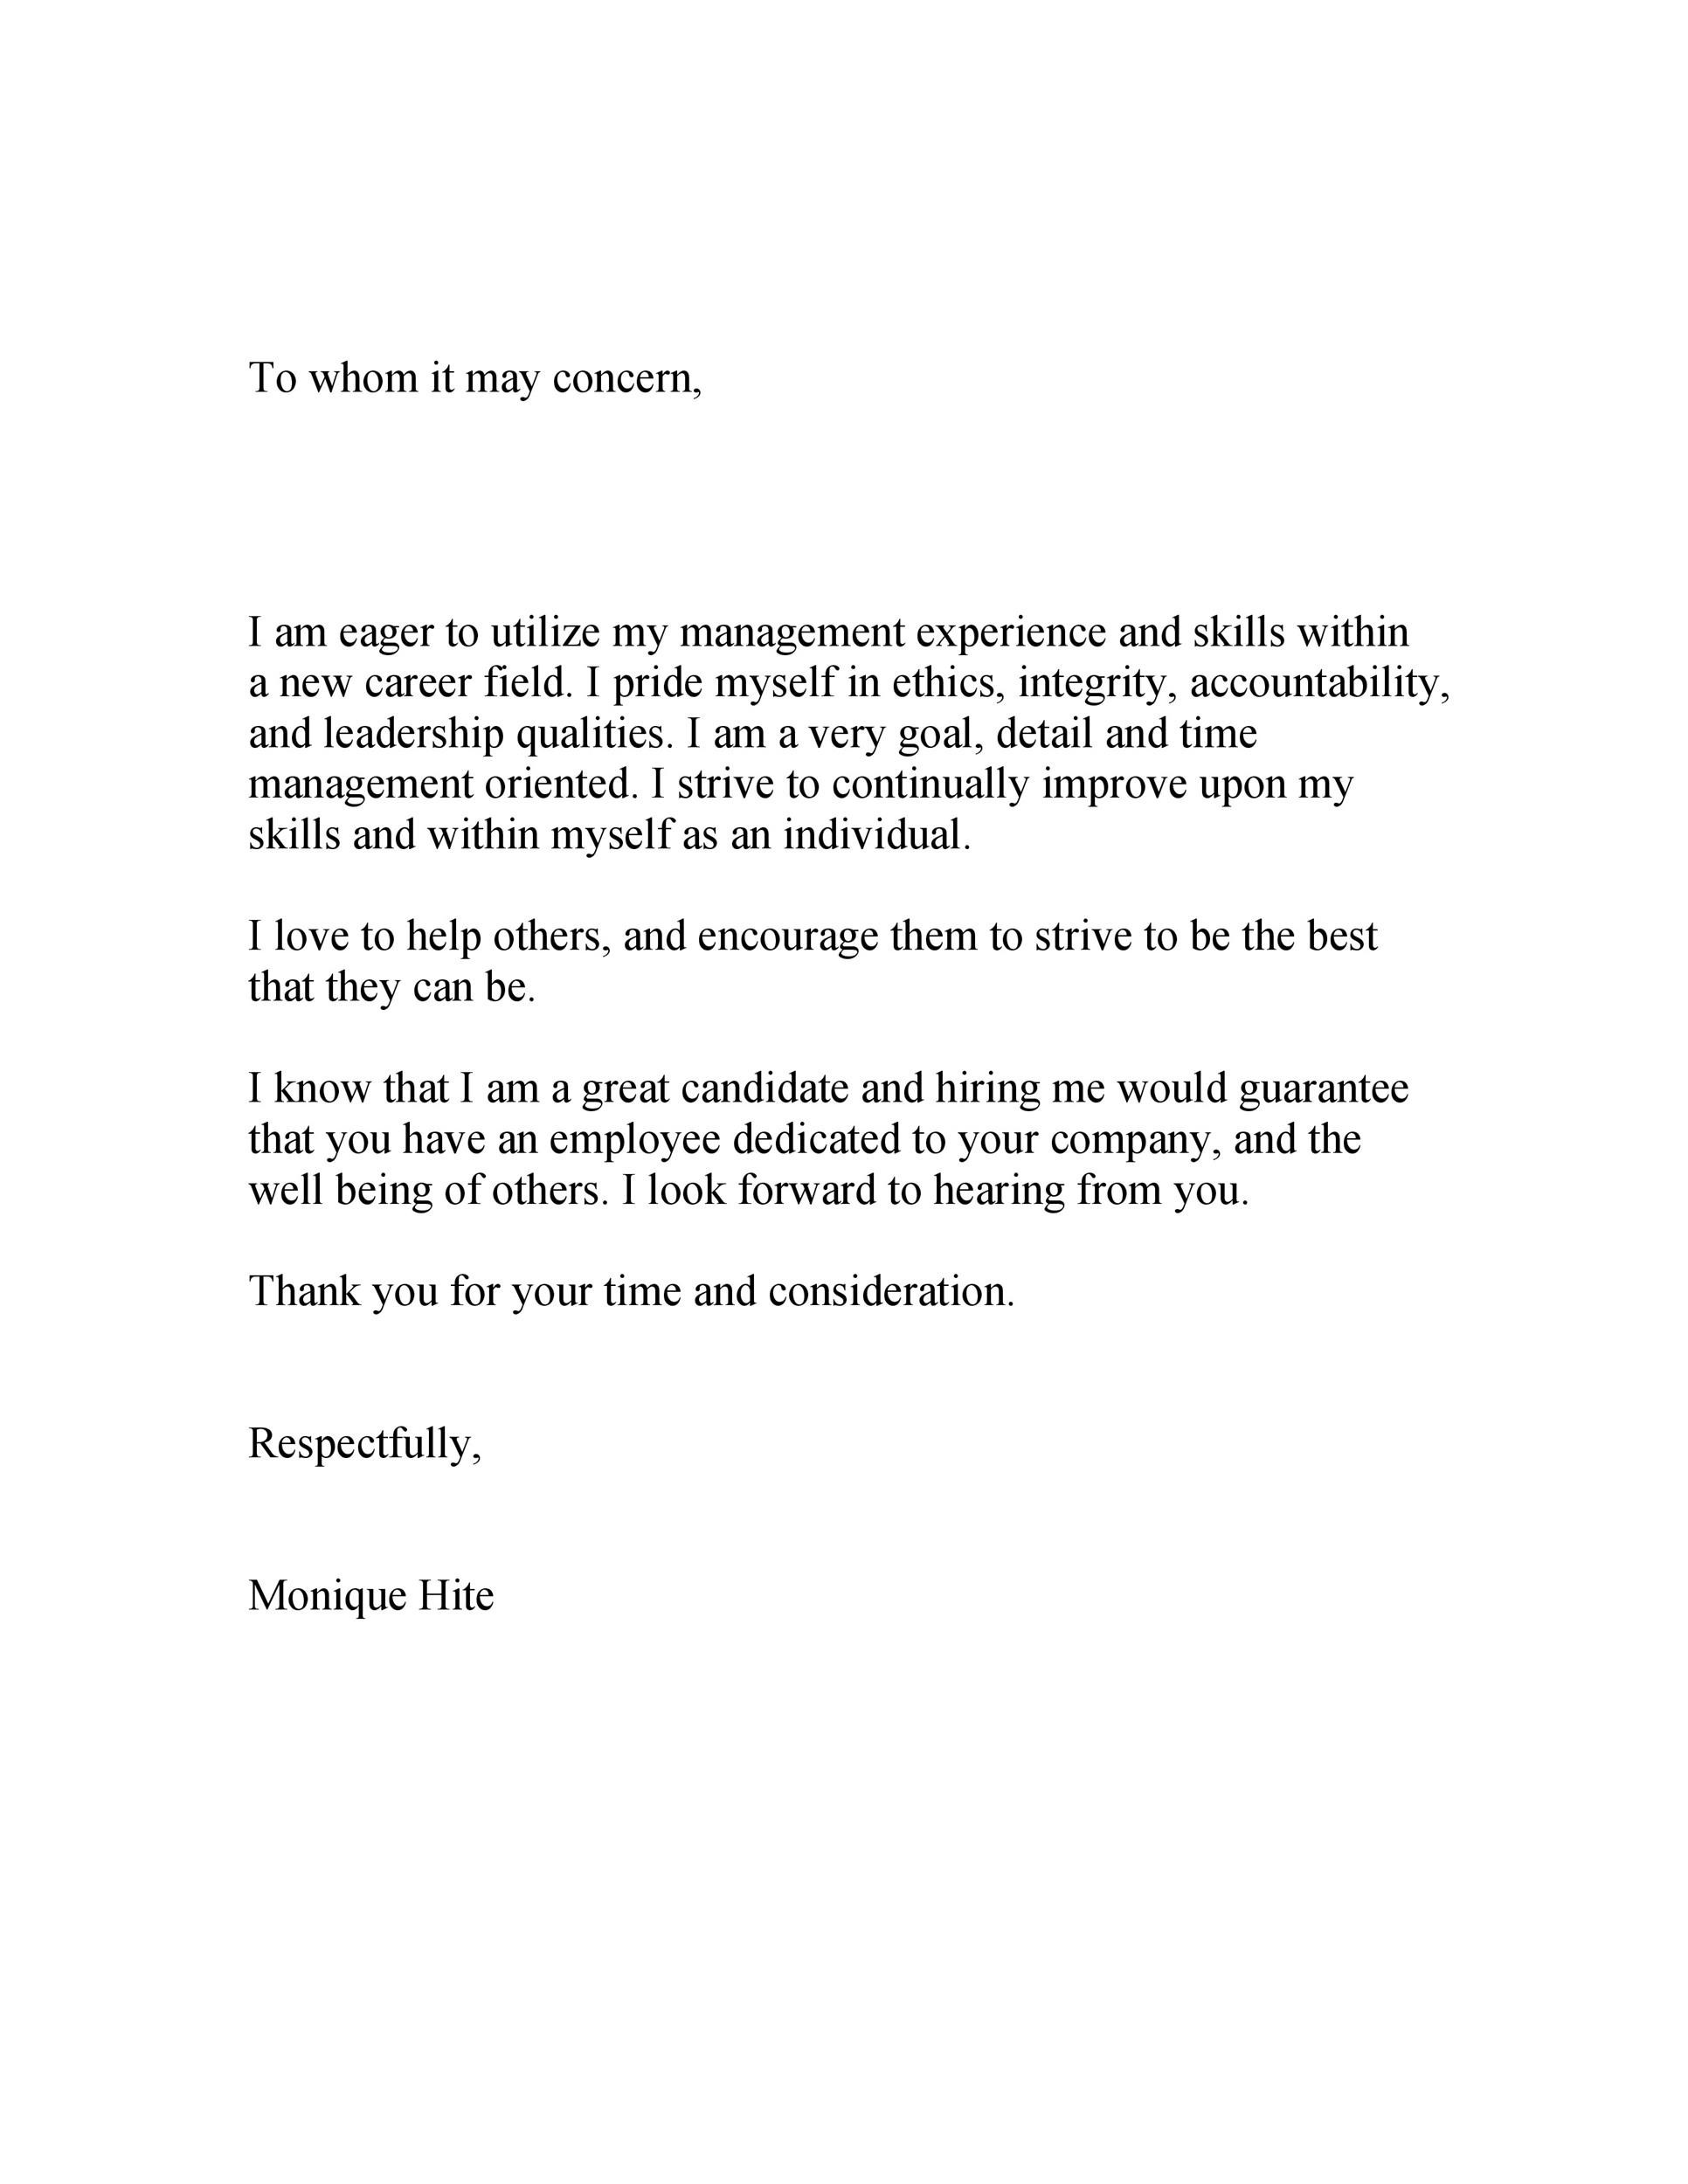 to whom it might concern cover letter